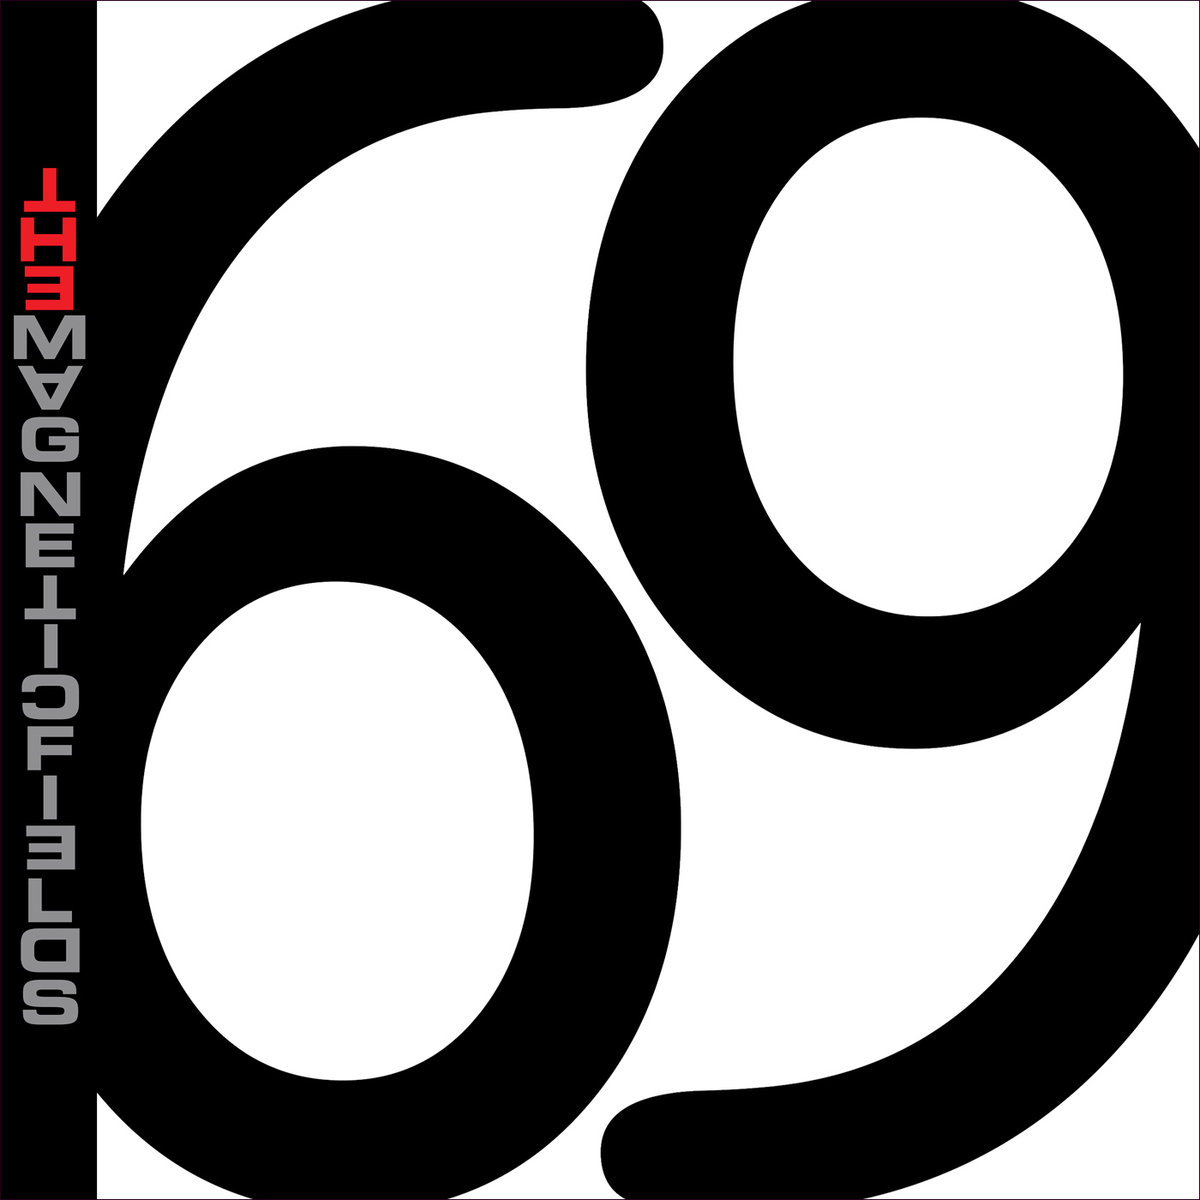 CULT '90s: The Magnetic Fields - '69 Love Songs' - The